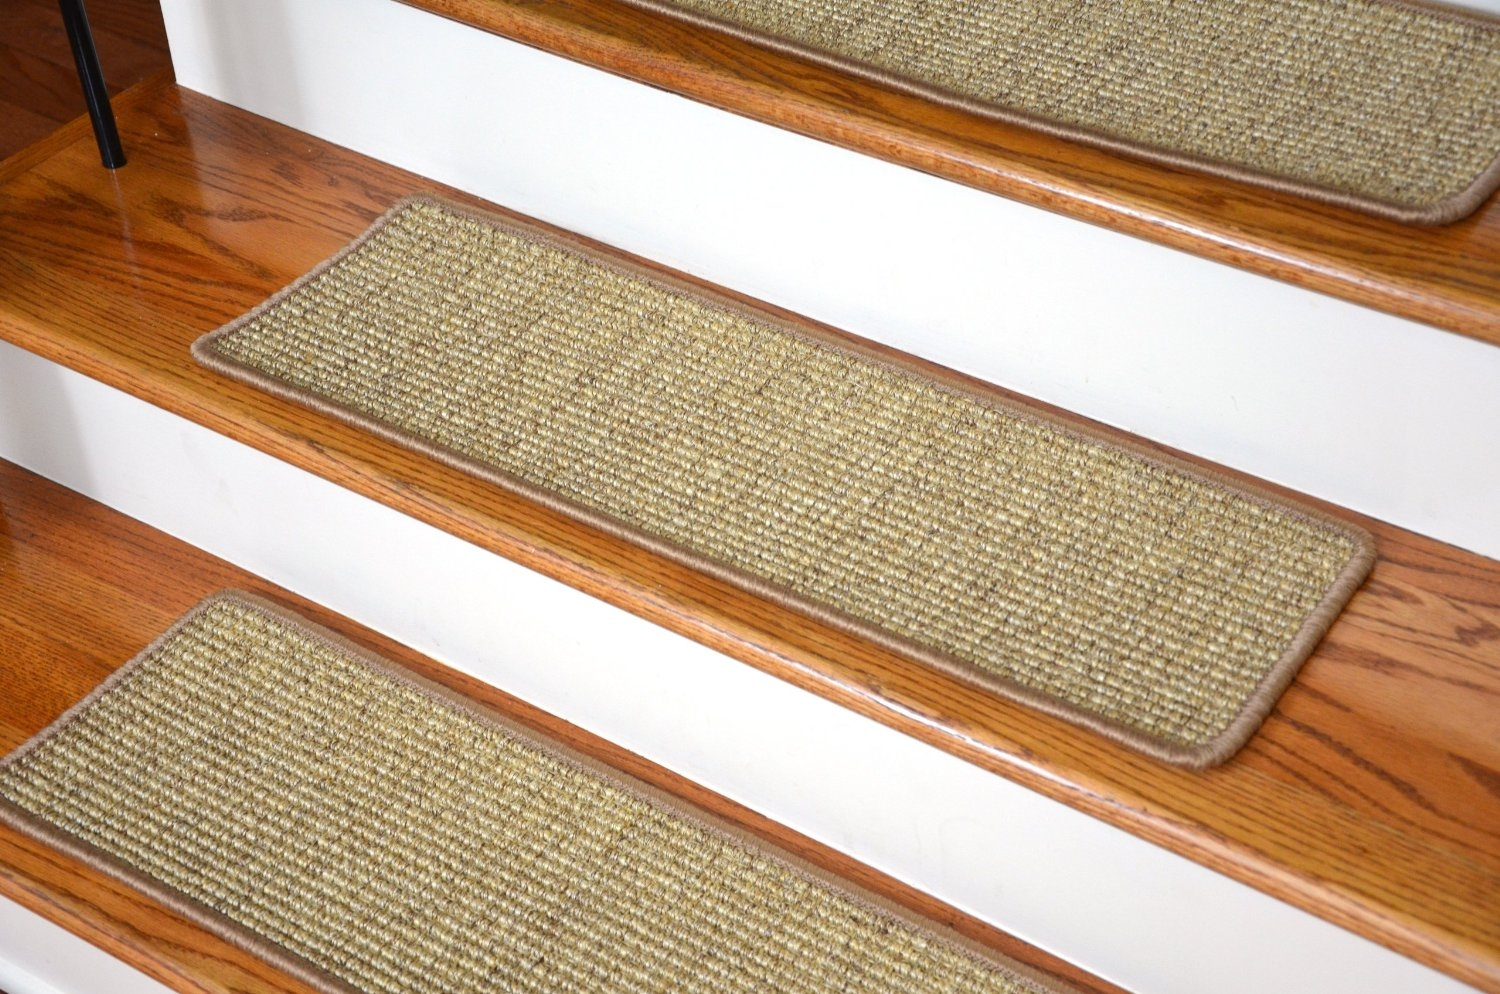 Easy Installing Carpet Stair Treads Stair Design Ideas With Regard To Stair Tread Carpet Rugs (Image 4 of 15)